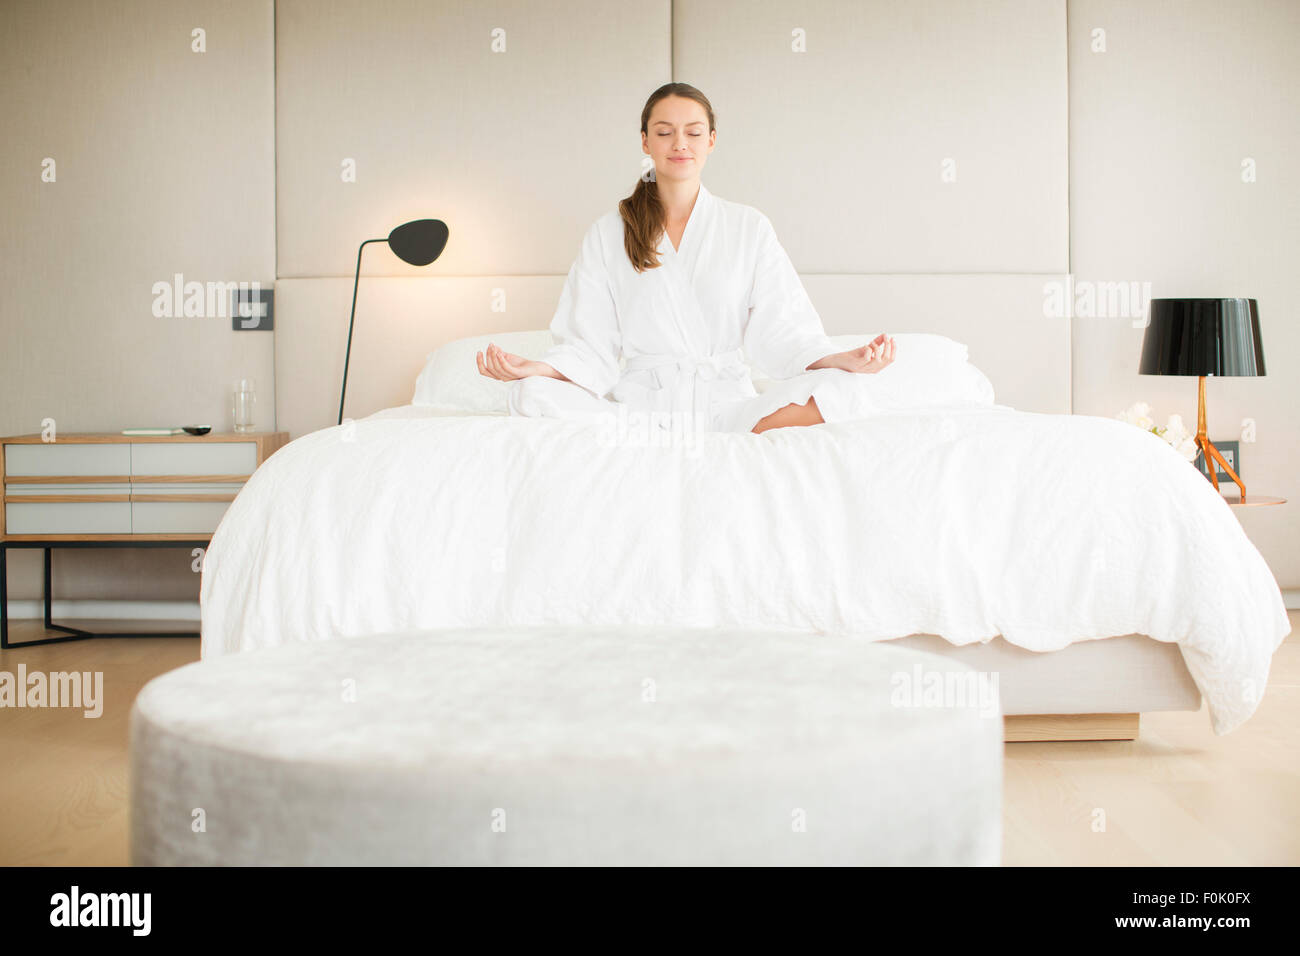 position stockfotos position bilder alamy. Black Bedroom Furniture Sets. Home Design Ideas